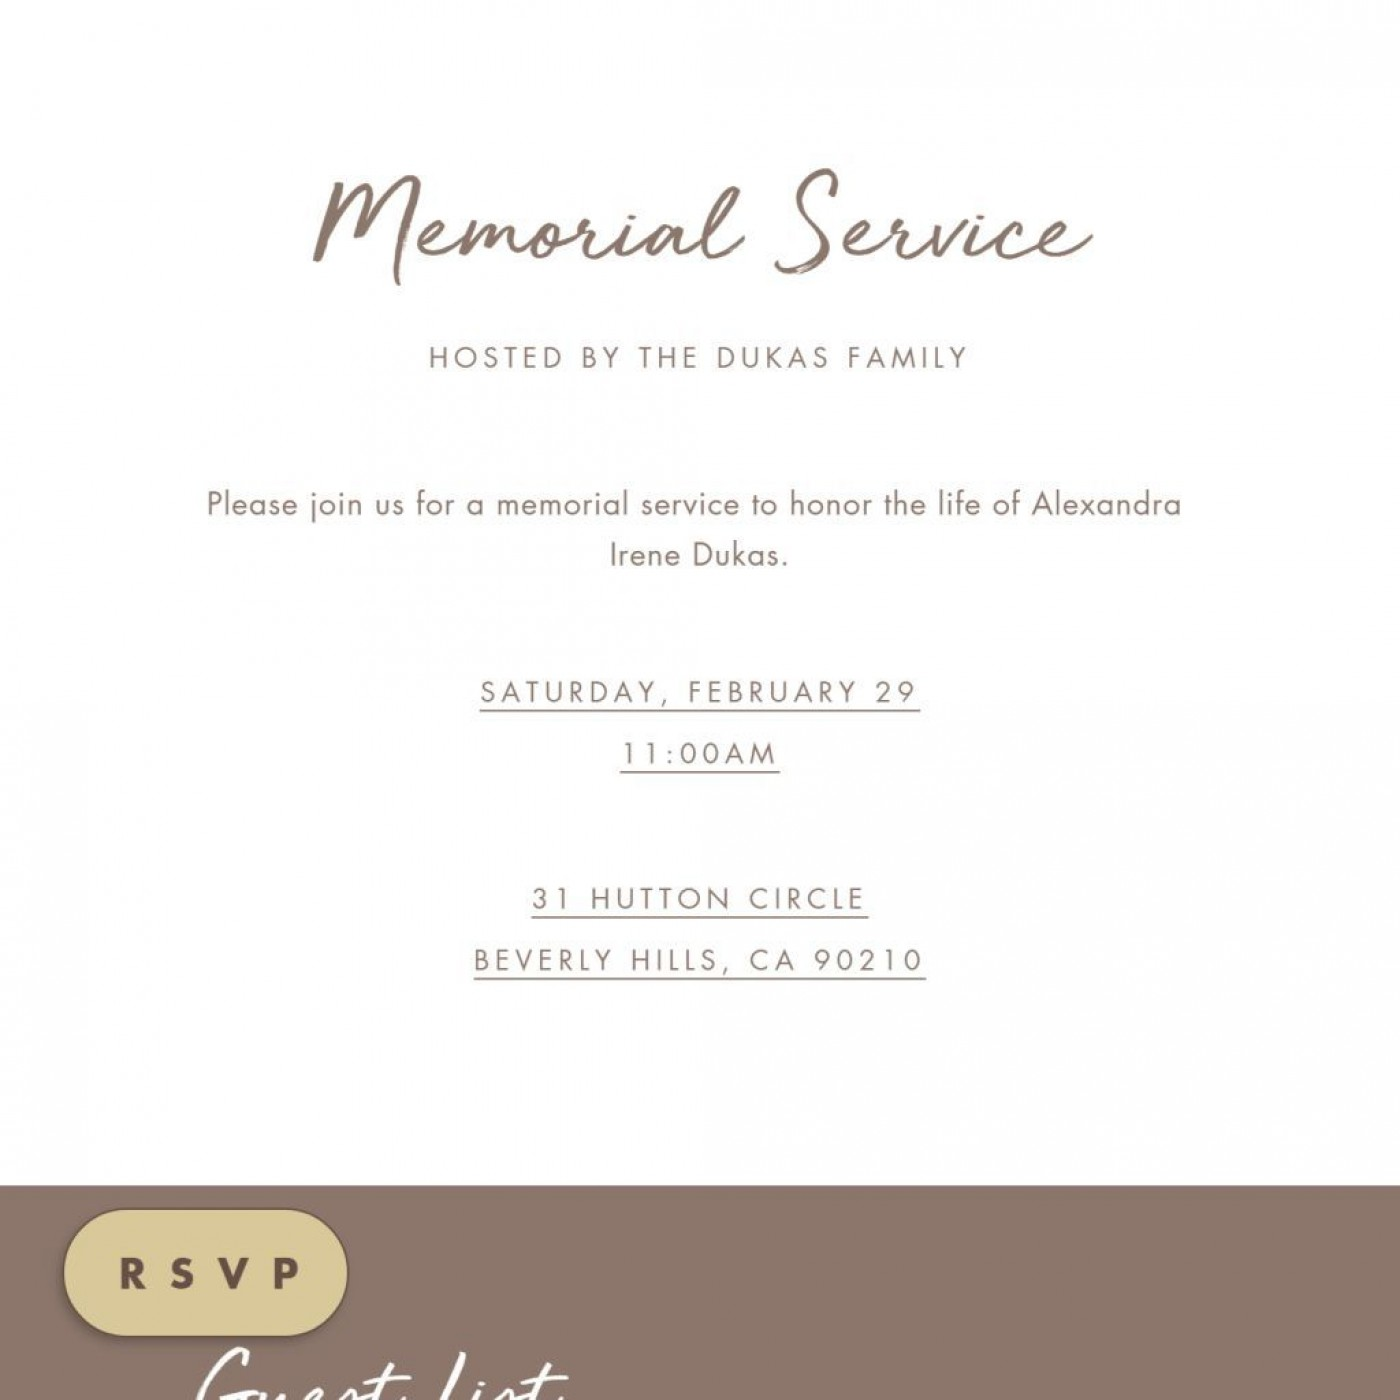 009 Fearsome Celebration Of Life Invite Template Free Picture  Invitation Download1400